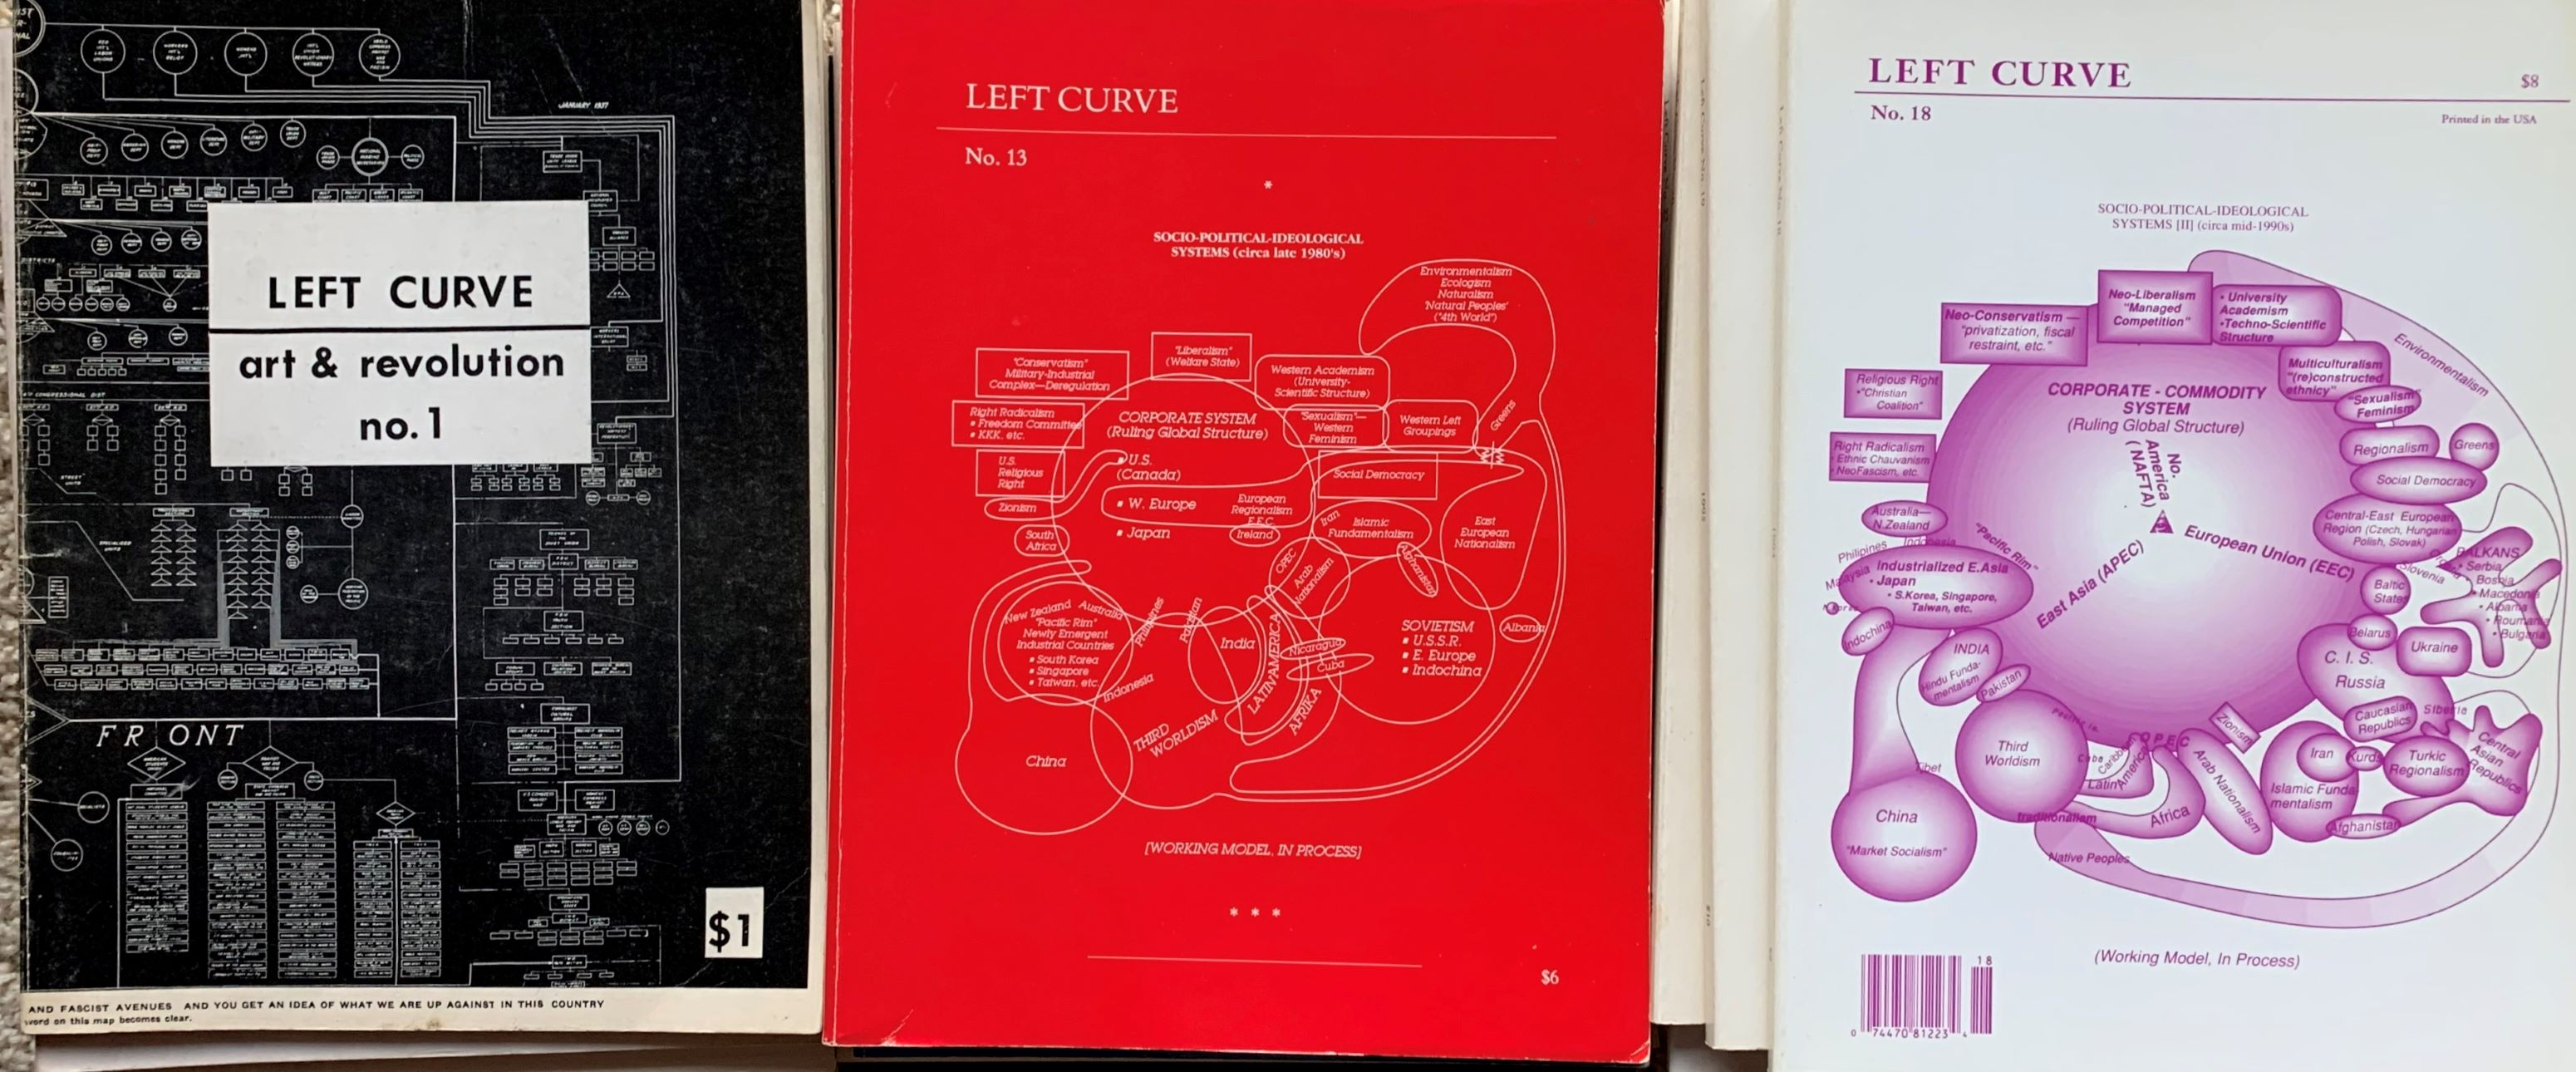 Image for Left Curve, Art & Revolution. 17 issues, No.1, Spring 1974; No. 6 1976, No. 8 1982-83, and numbers 10 thru 23, 1985-1999.